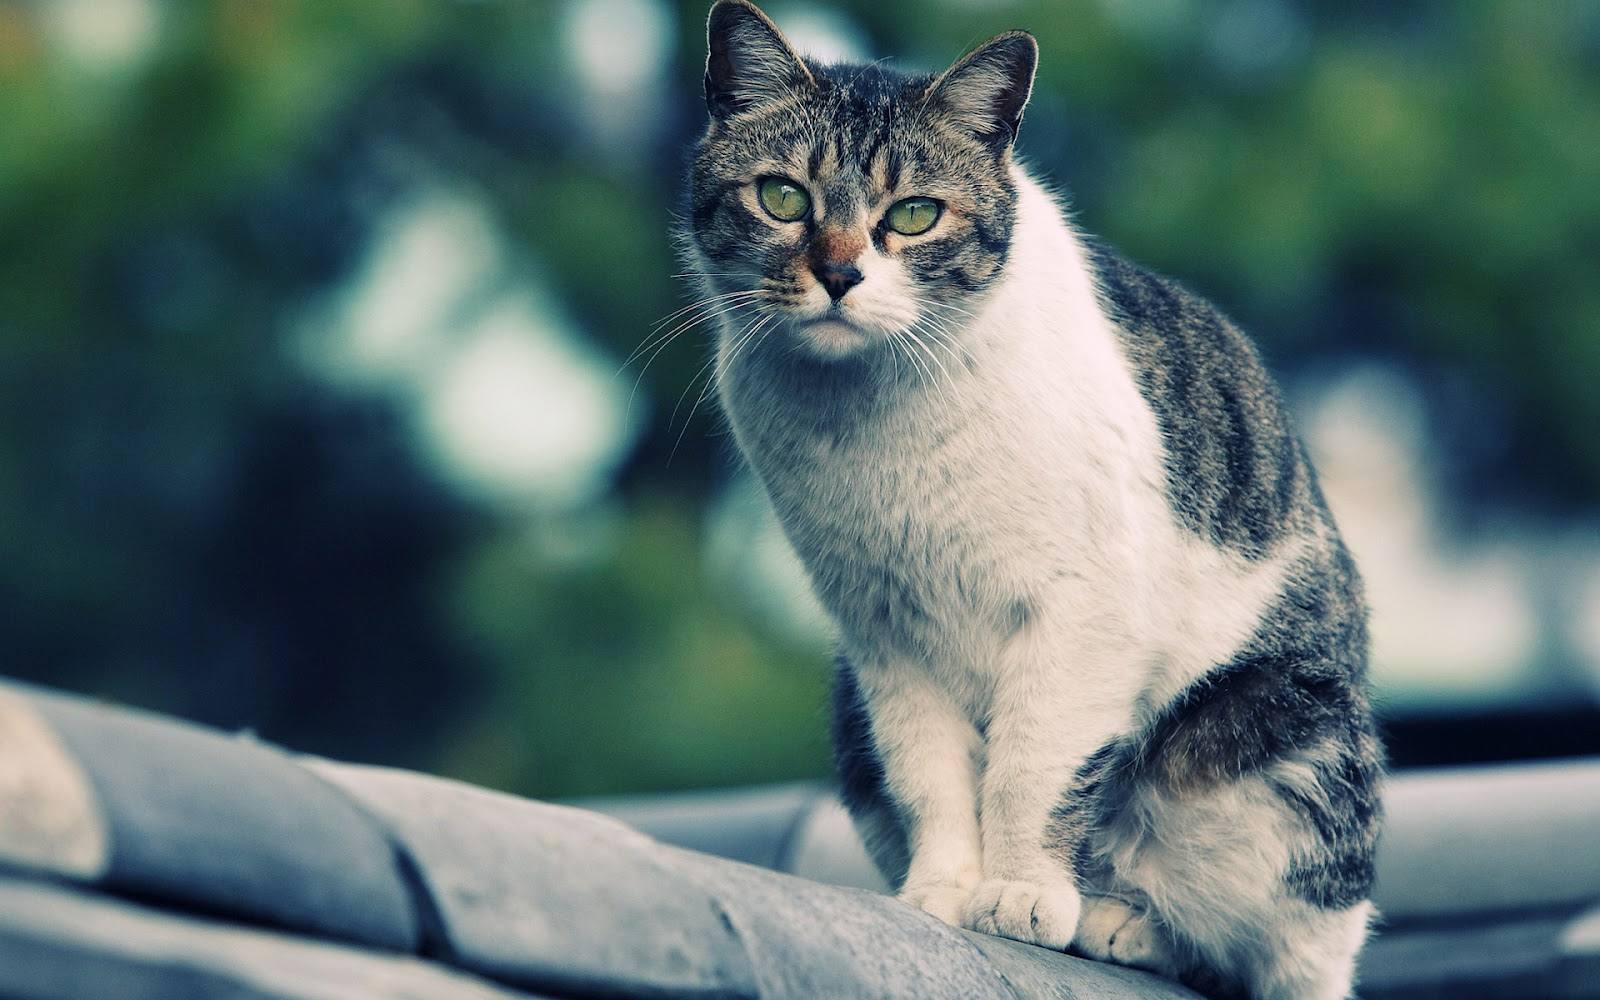 Proxecto gato cats wallpapers by bighdwallpapers - Caterpillar wallpaper ...